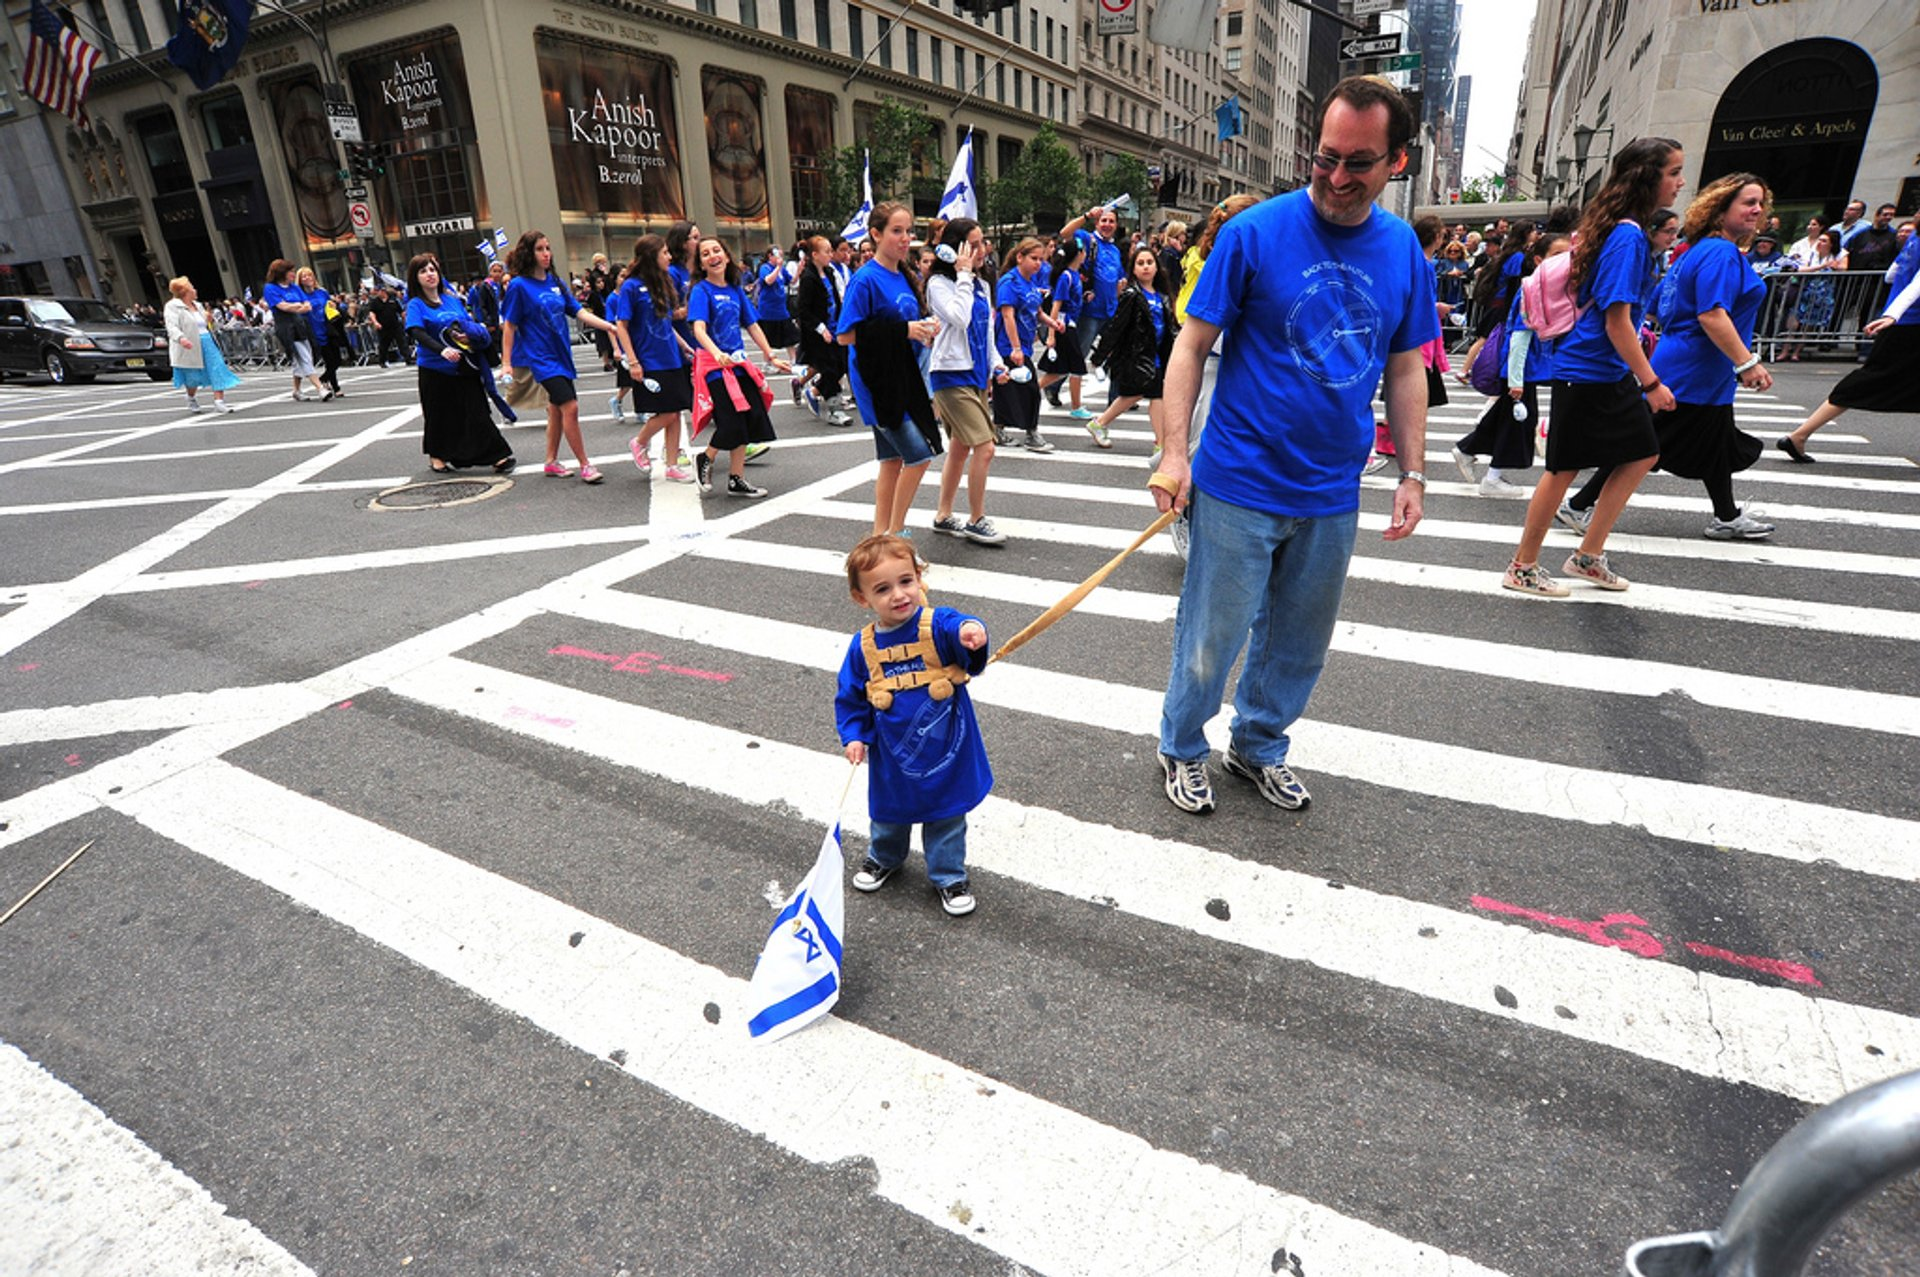 Best time to see Celebrate Israel Parade in New York 2020